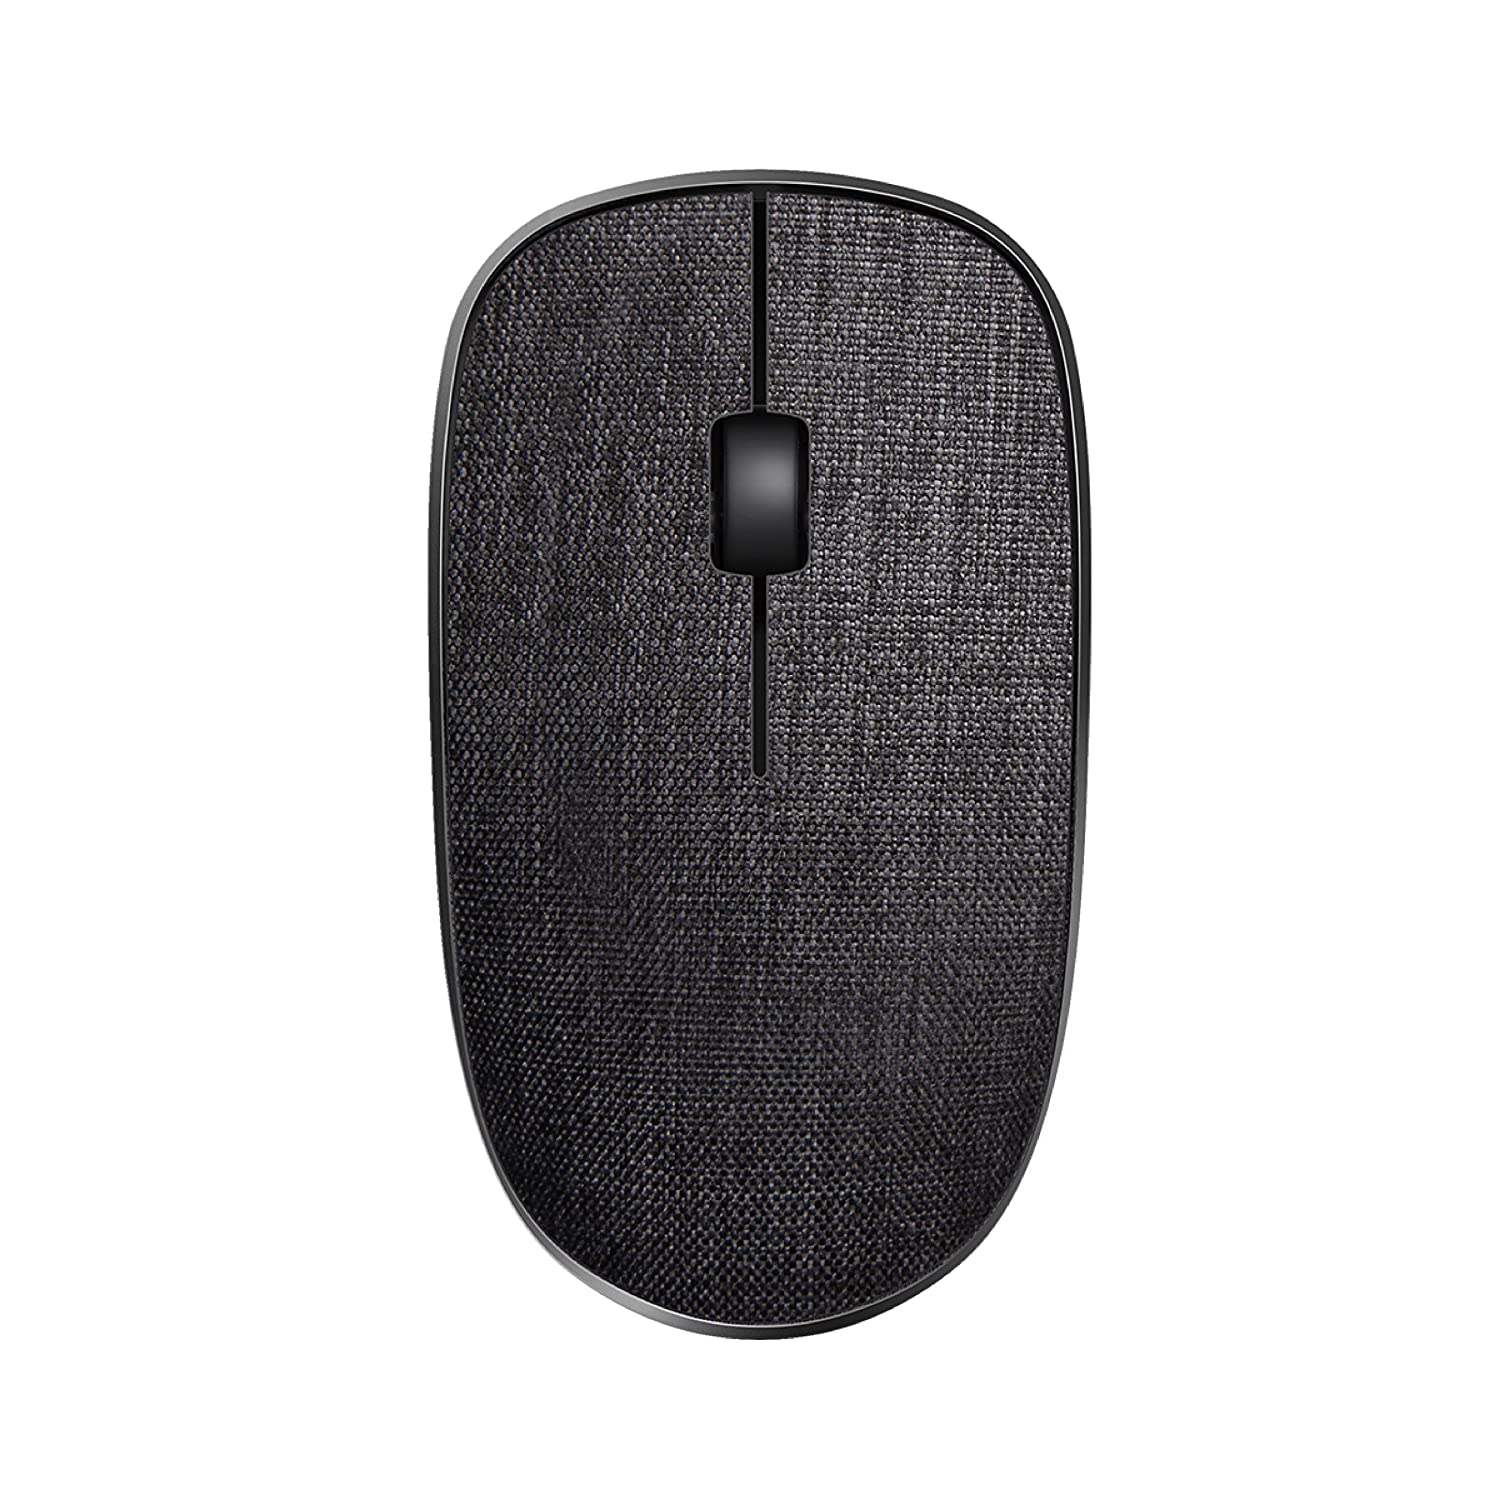 Rapoo 3510 Plus Wireless Optical Mouse(Black)